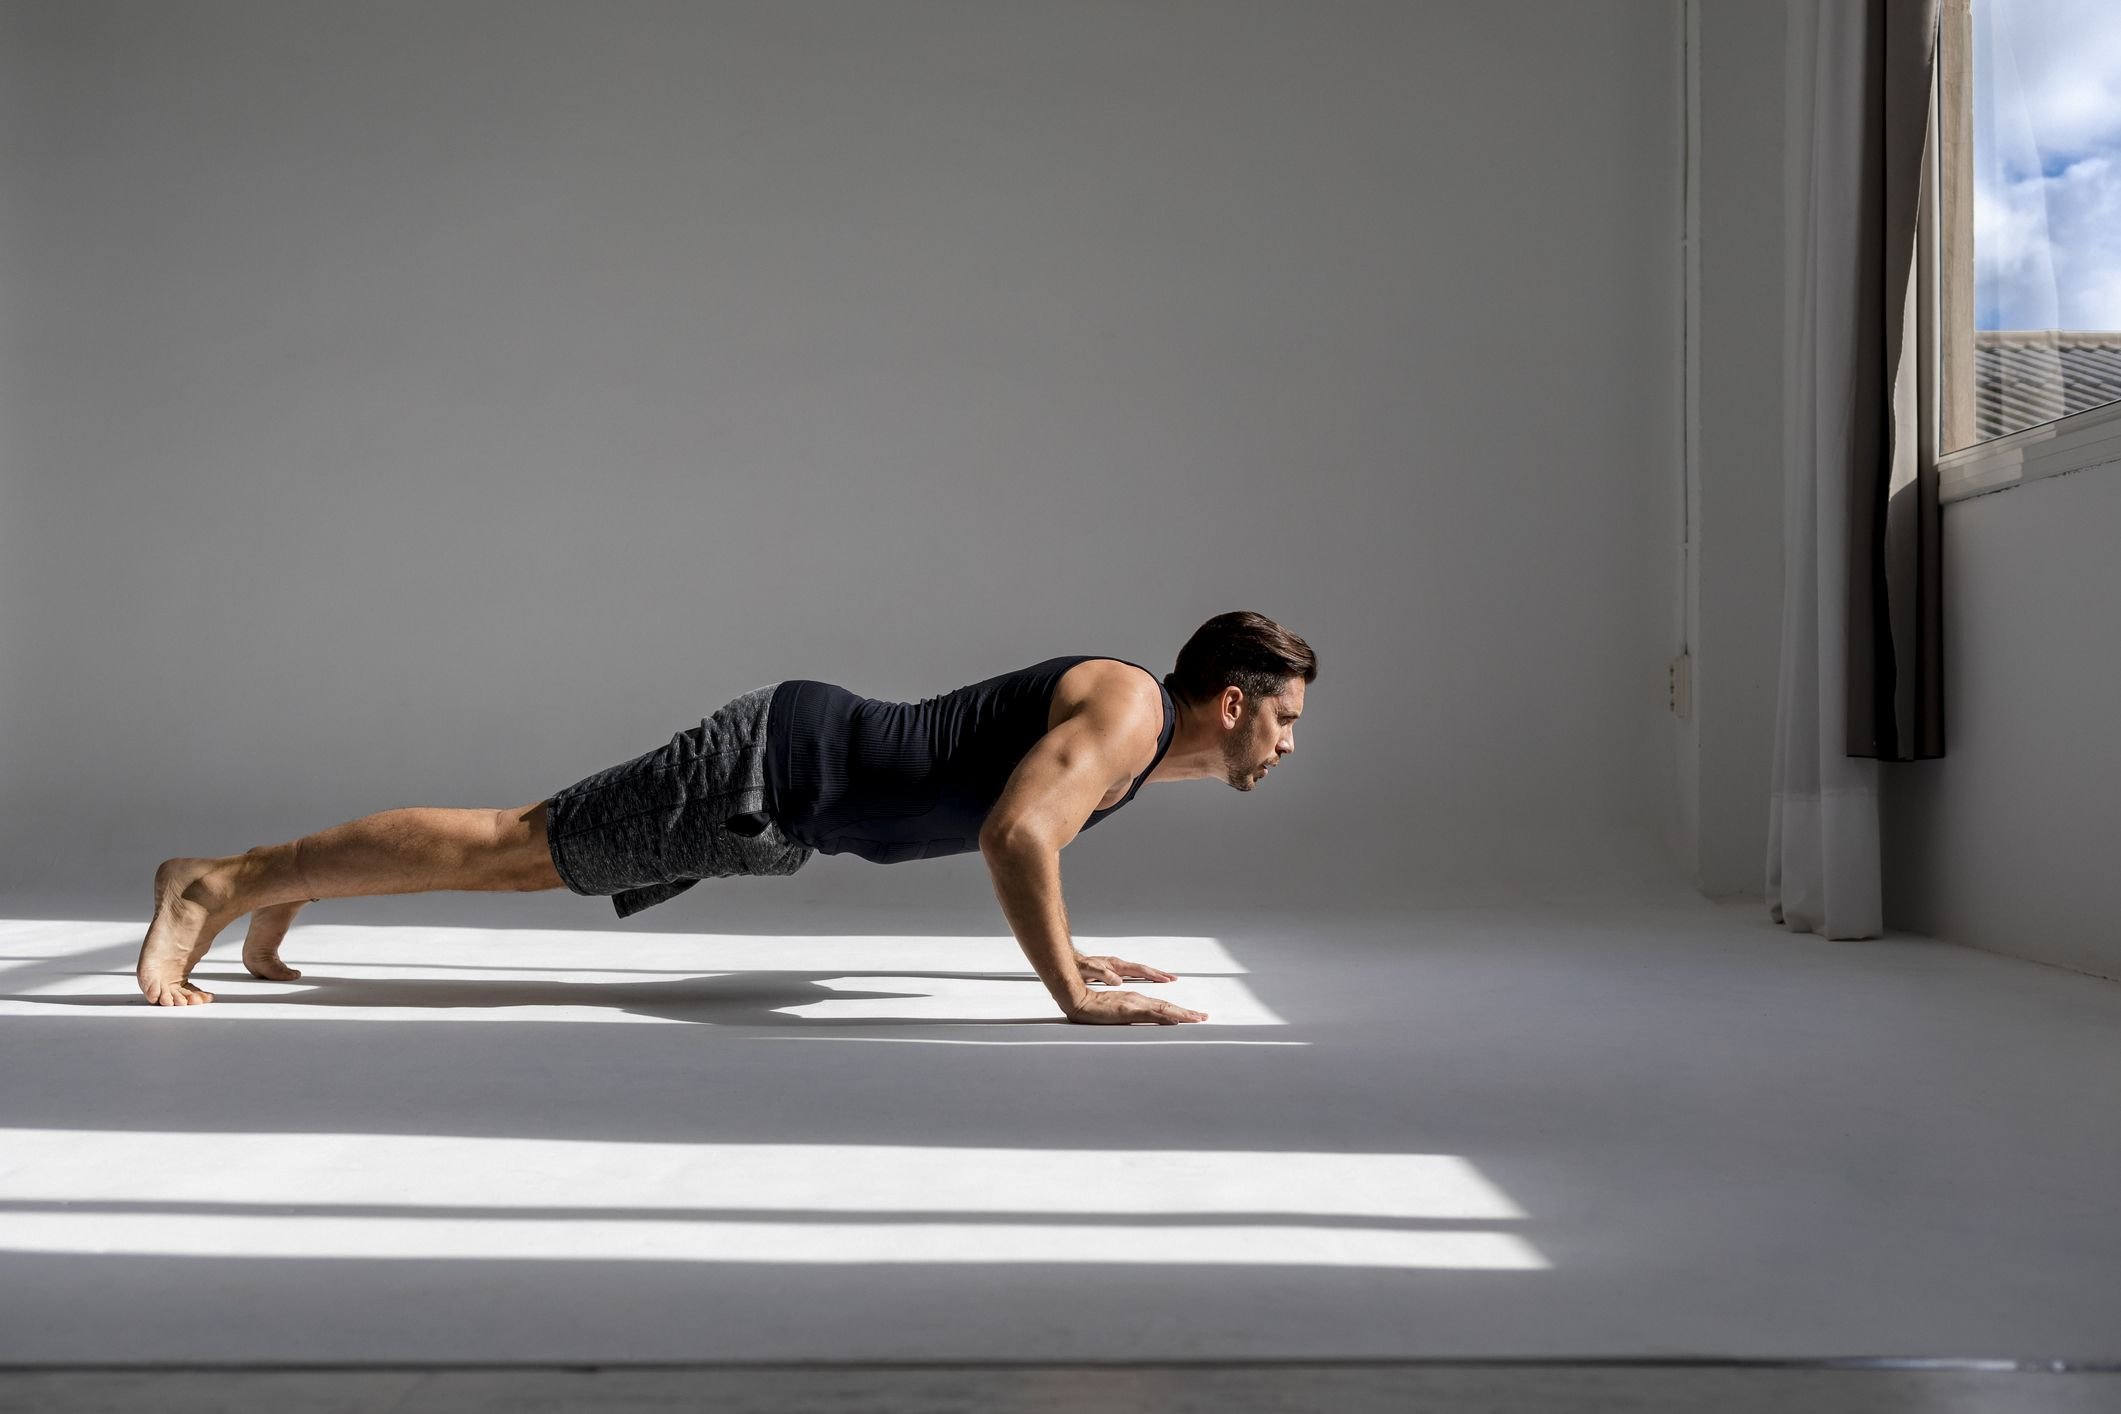 Watch What Happened When This Guy Did 500 Pushups Every Day for a Month